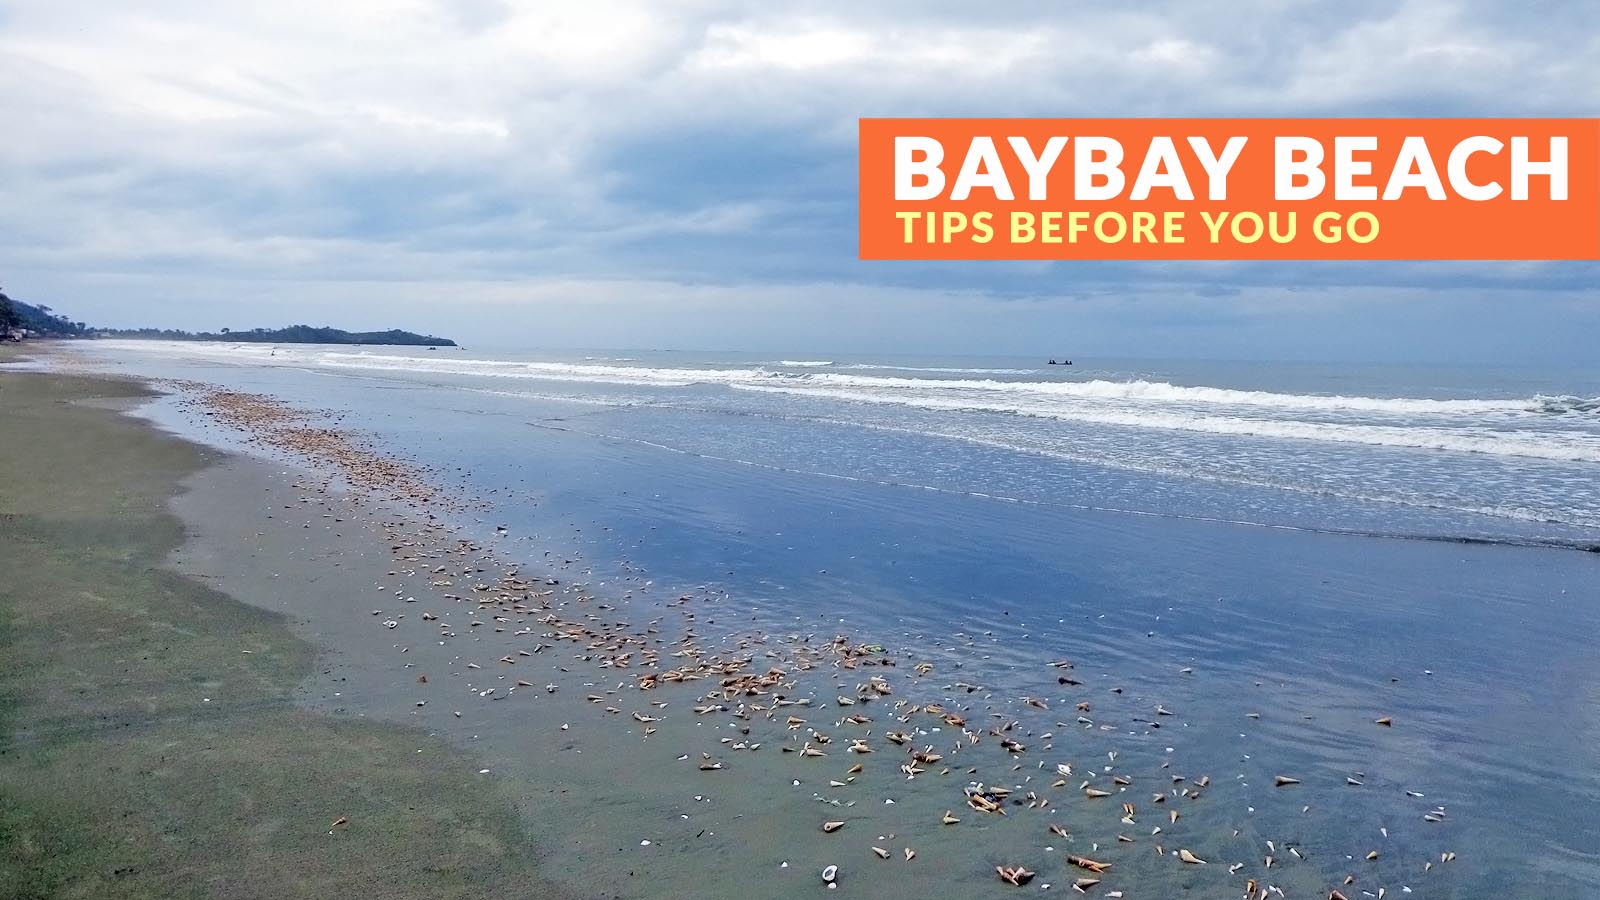 Baybay Beach Capiz Important Travel Tips Philippine